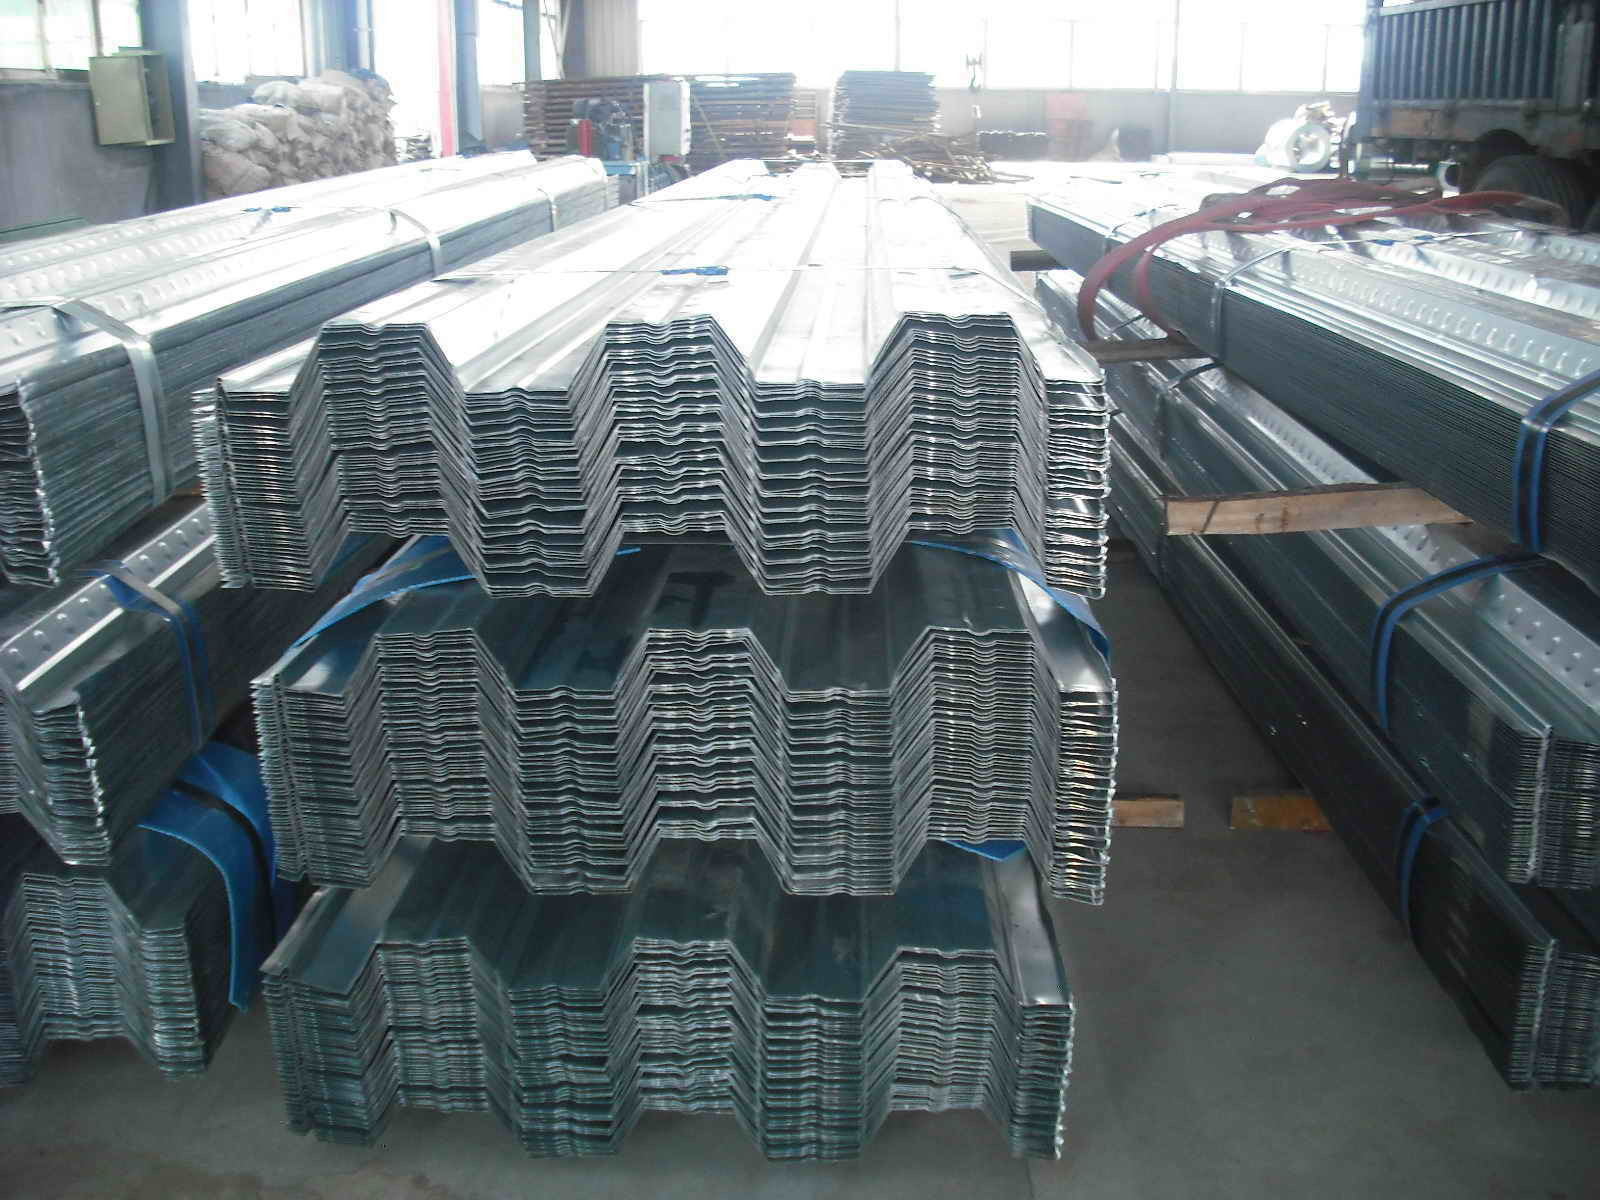 Fireproof Long Span Galvanized Steel Decking Sheet for Steel Buildings